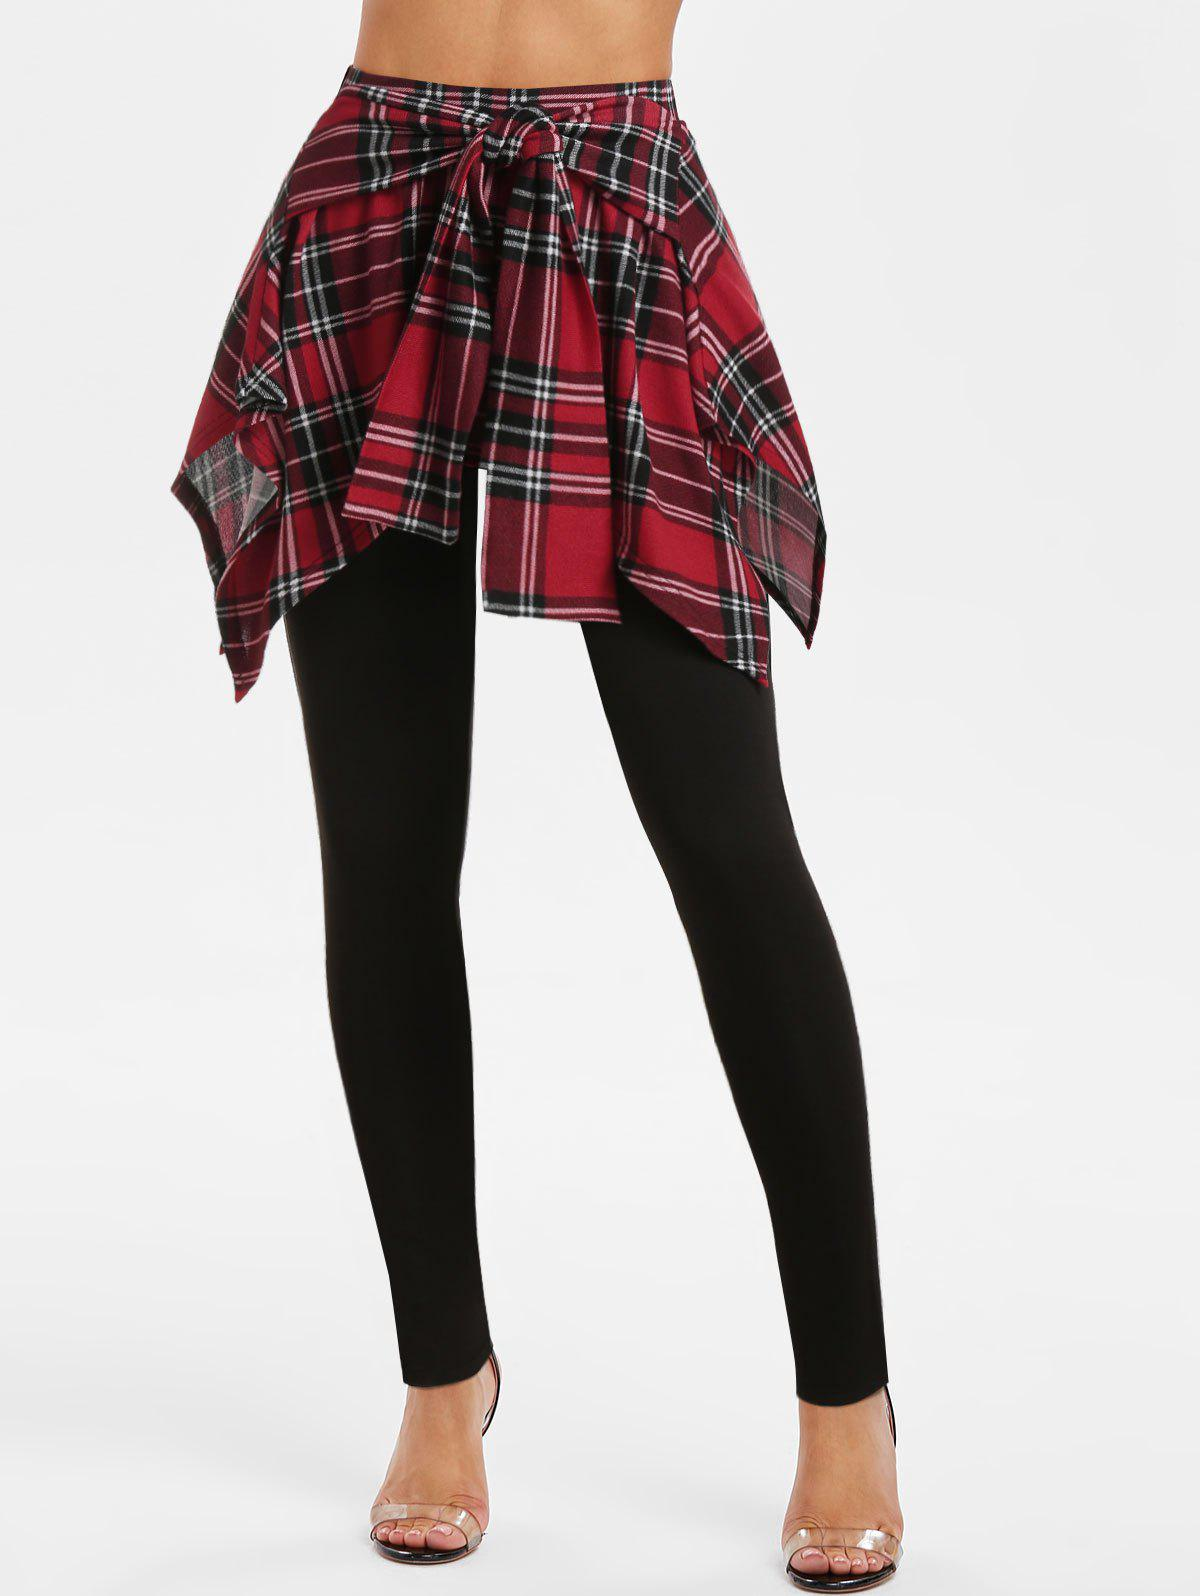 Plaid Print Tie Front Skirted Pants - BLACK L